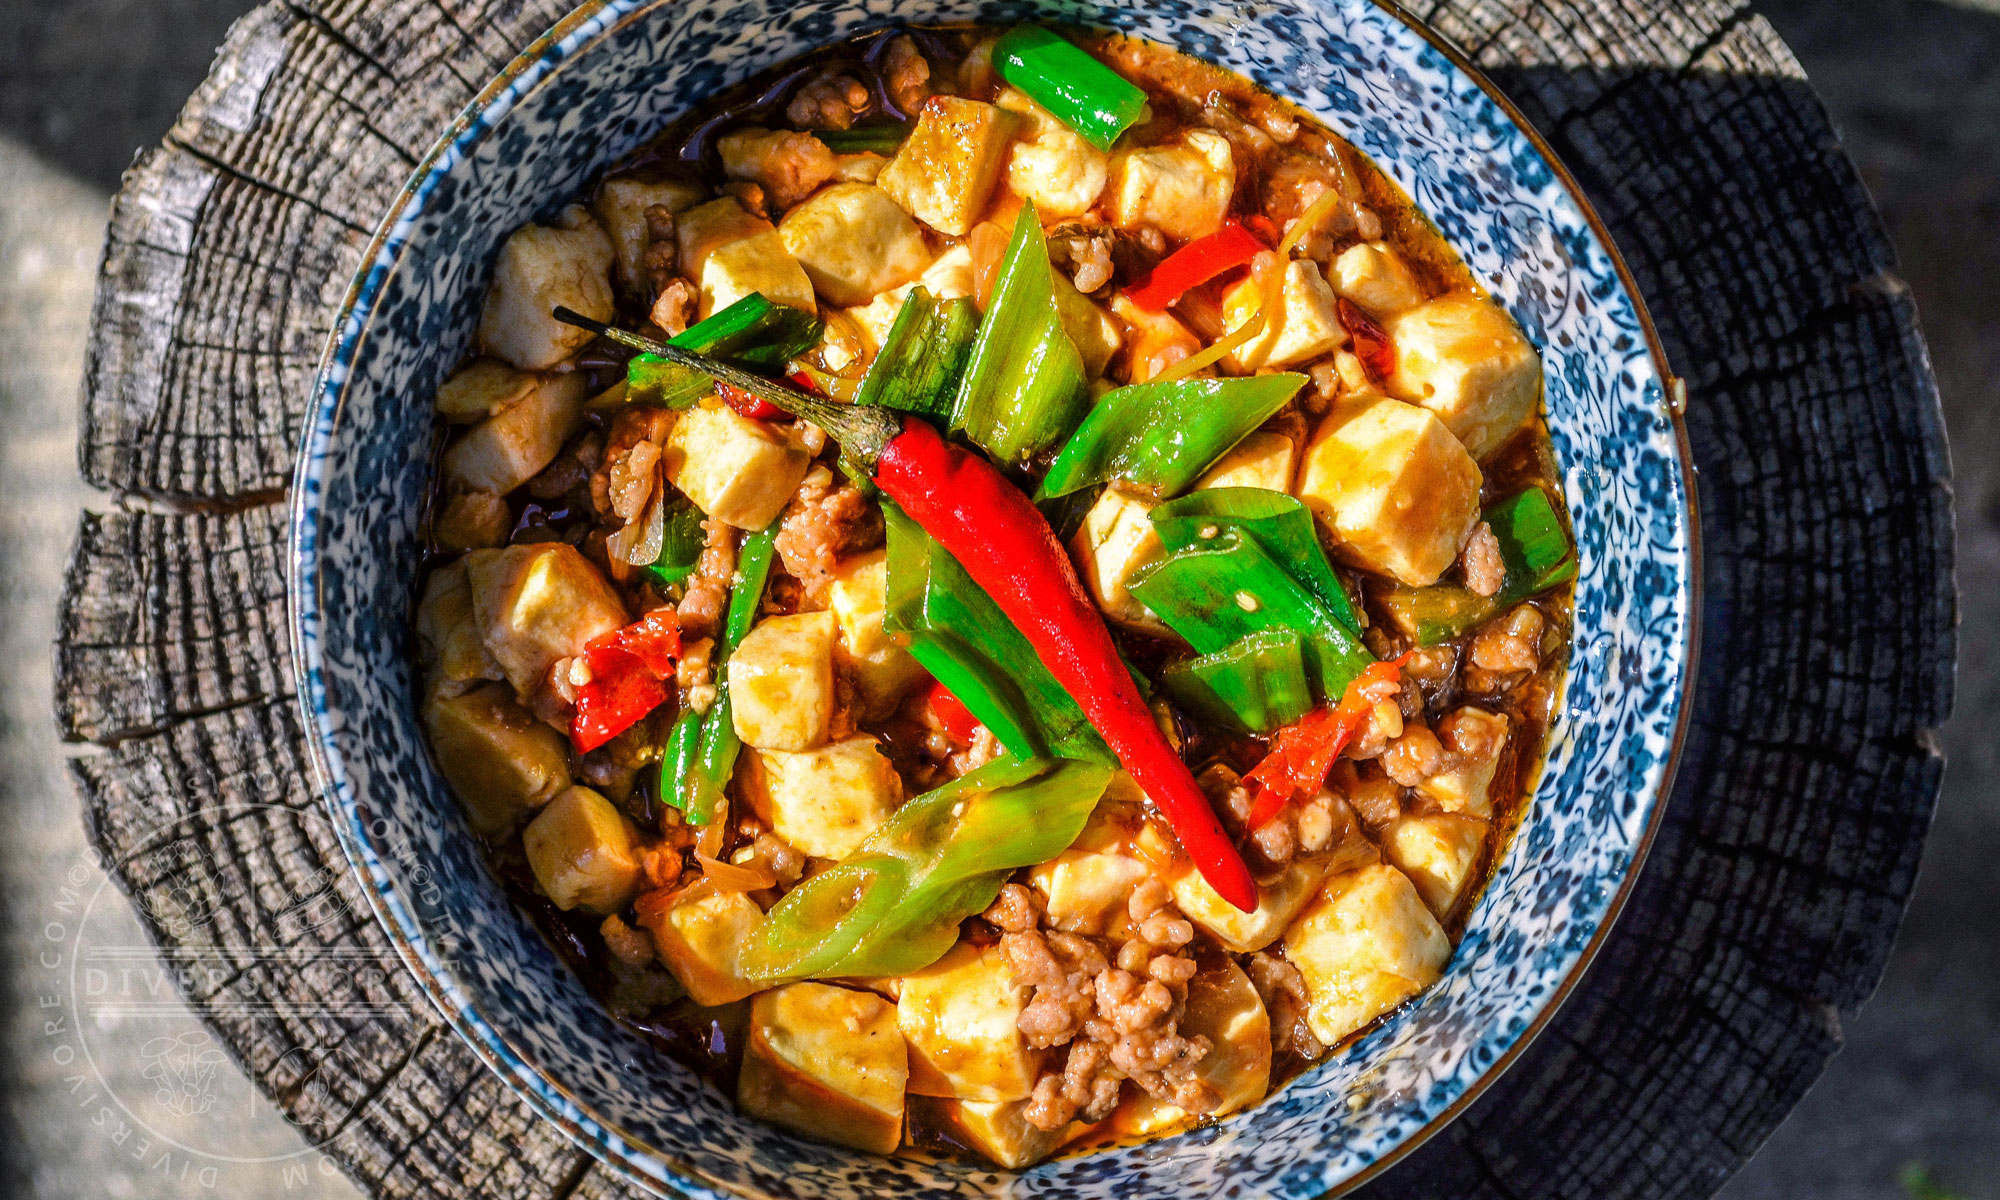 Mapo tofu (Chinese Tofu, Pork, and Vegetables) - Diversivore.com